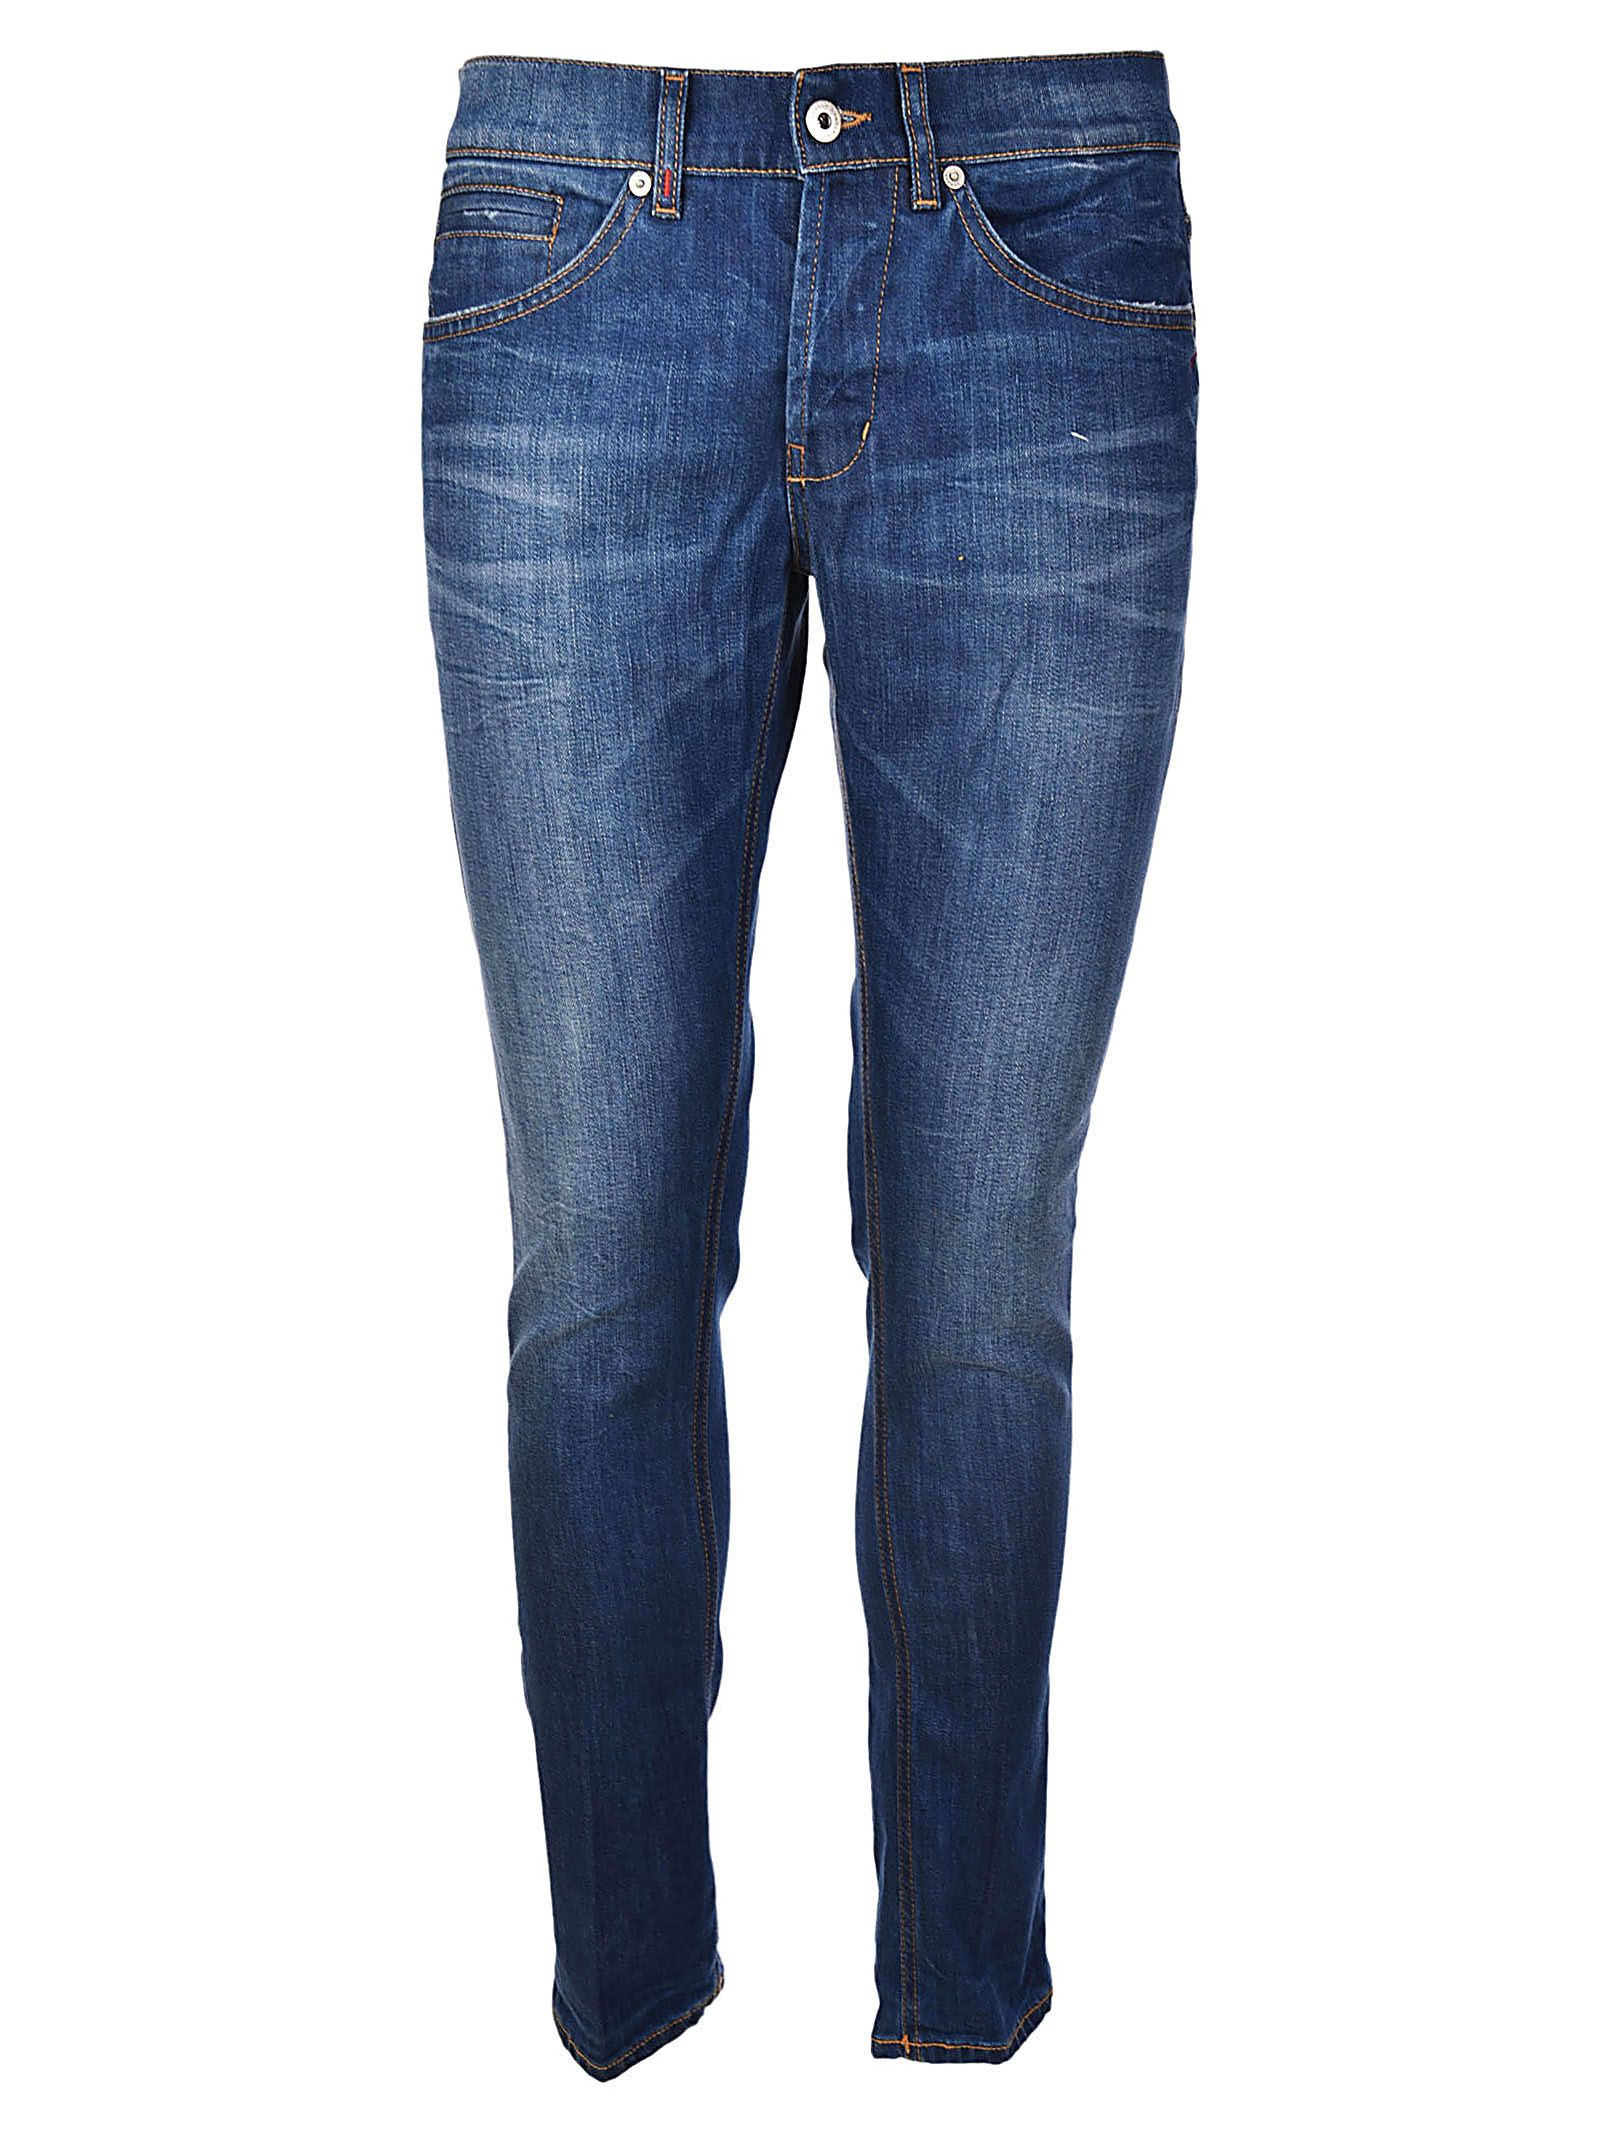 Jeans On Sale in Outlet, George, Denim, Cotton, 2017, 32 Dondup